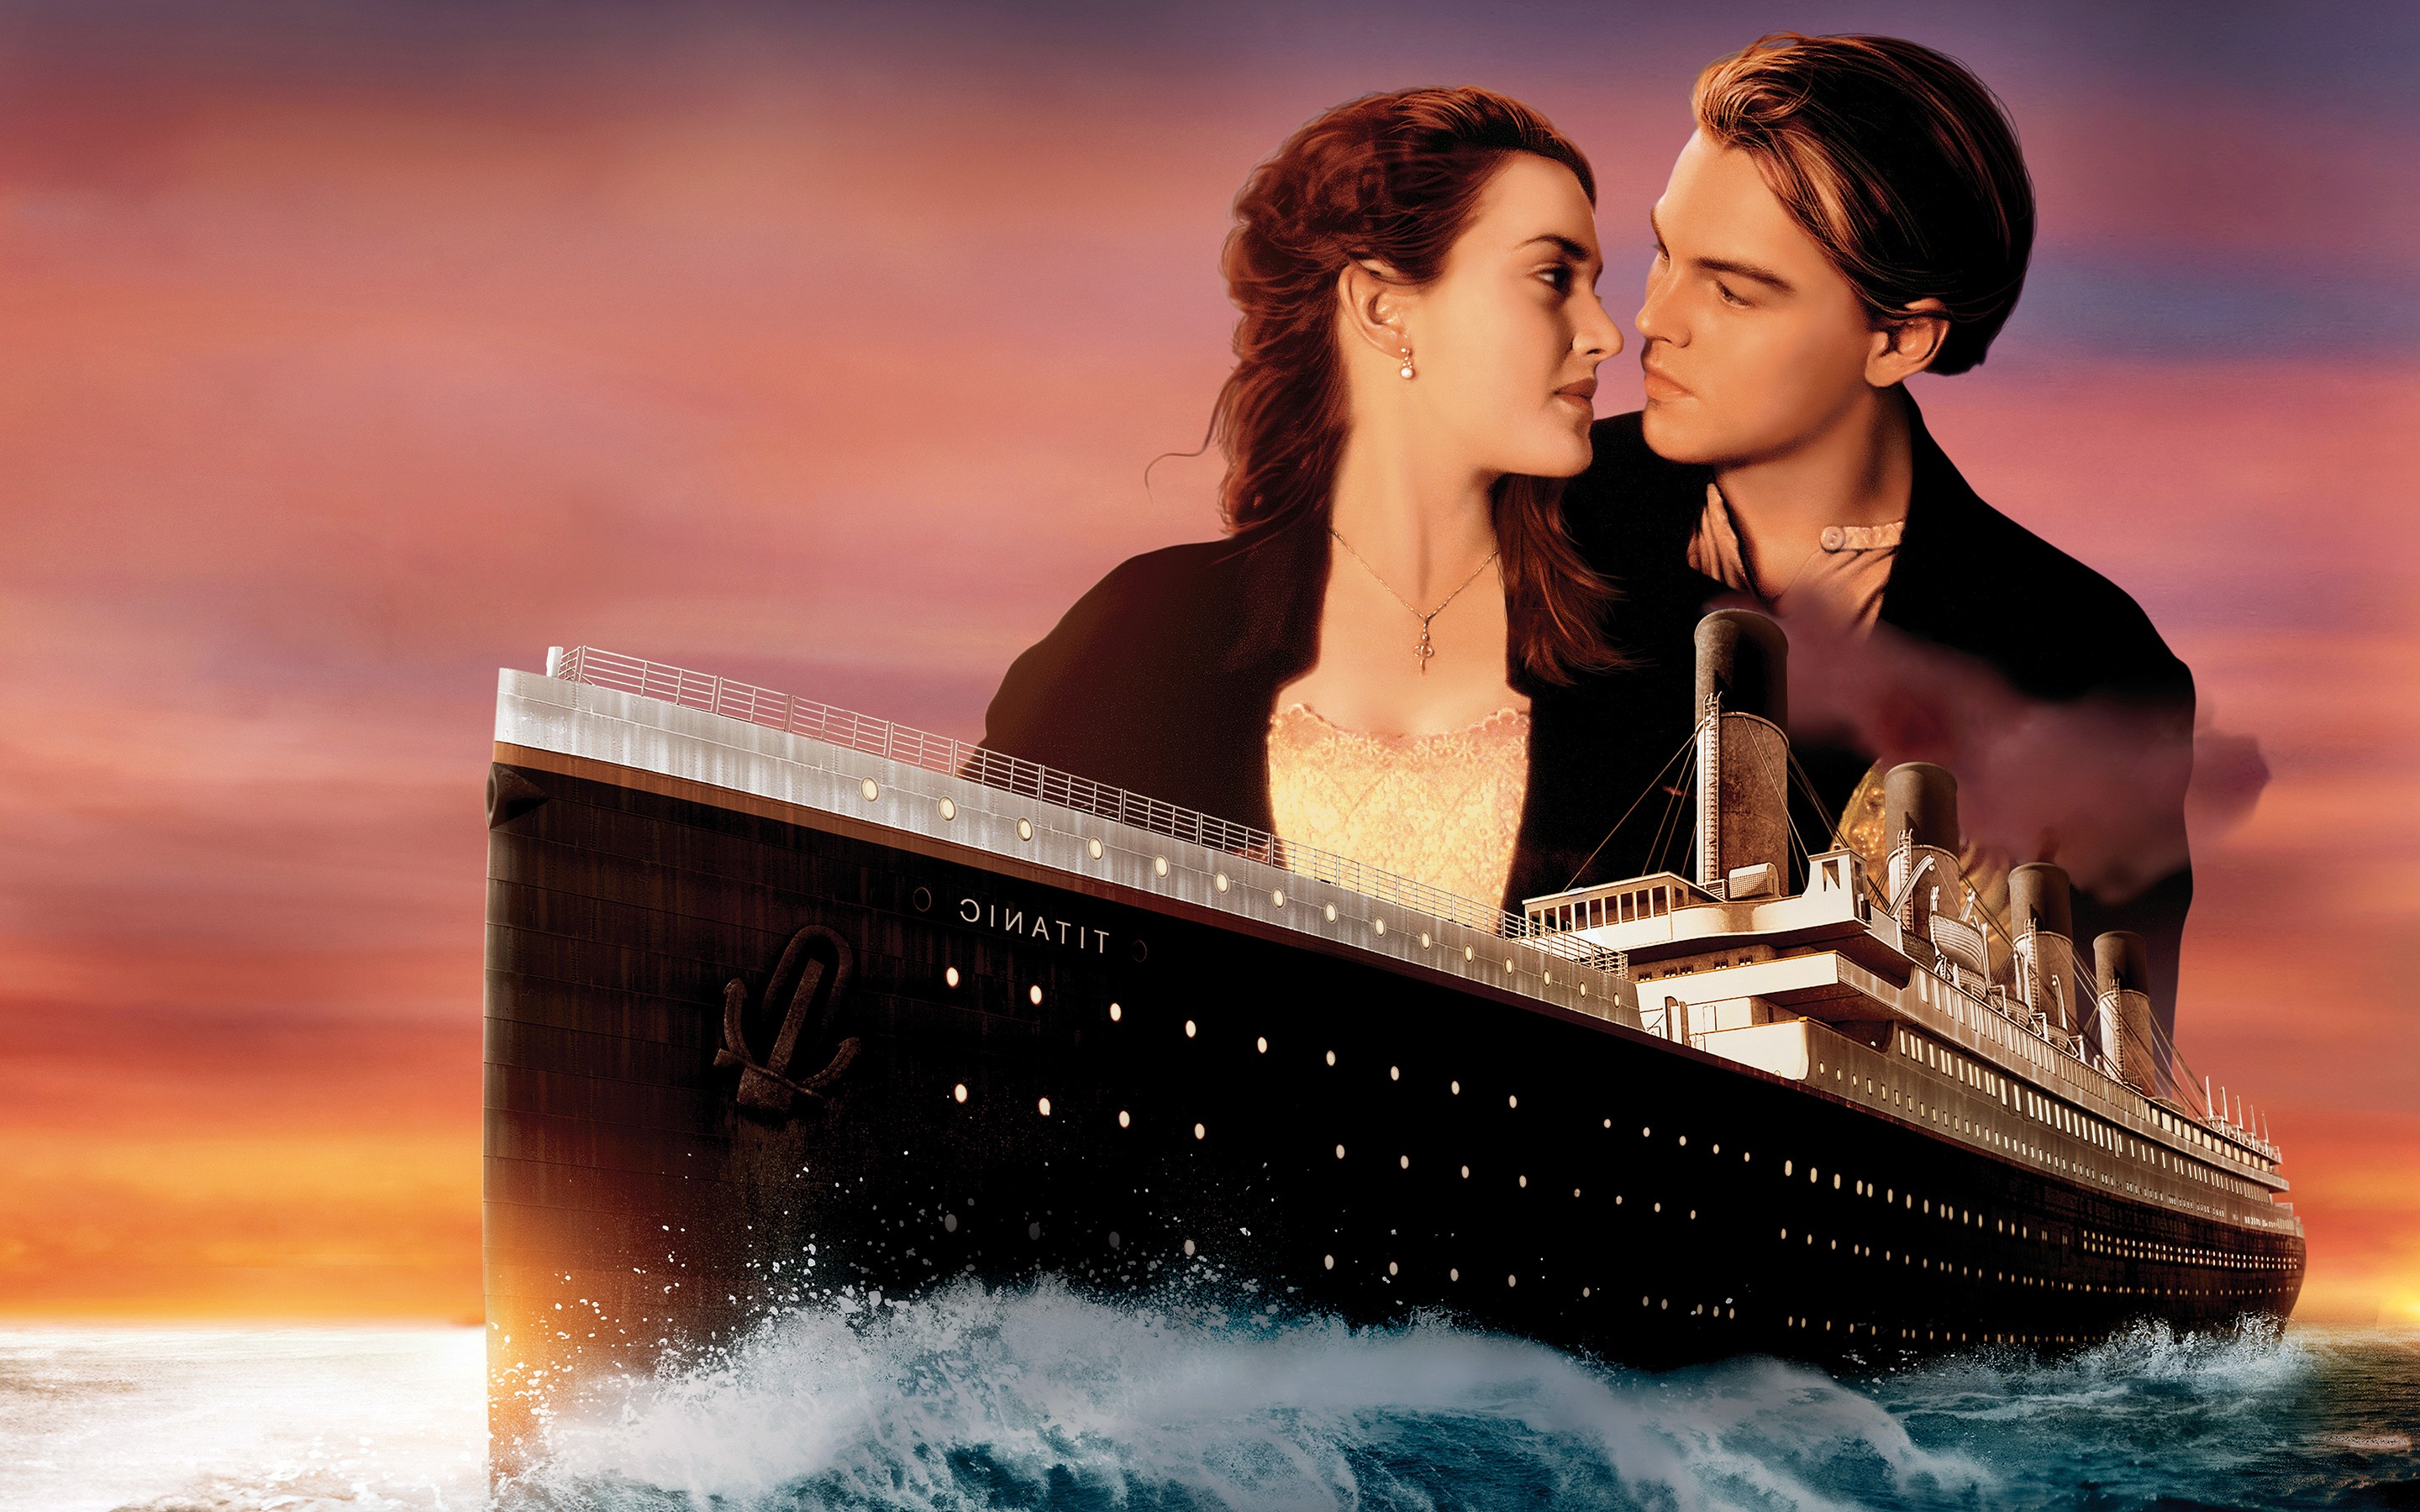 Titanic Love Wallpaper Hd : Titanic Movie Full HD, HD Movies, 4k Wallpapers, Images, Backgrounds, Photos and Pictures